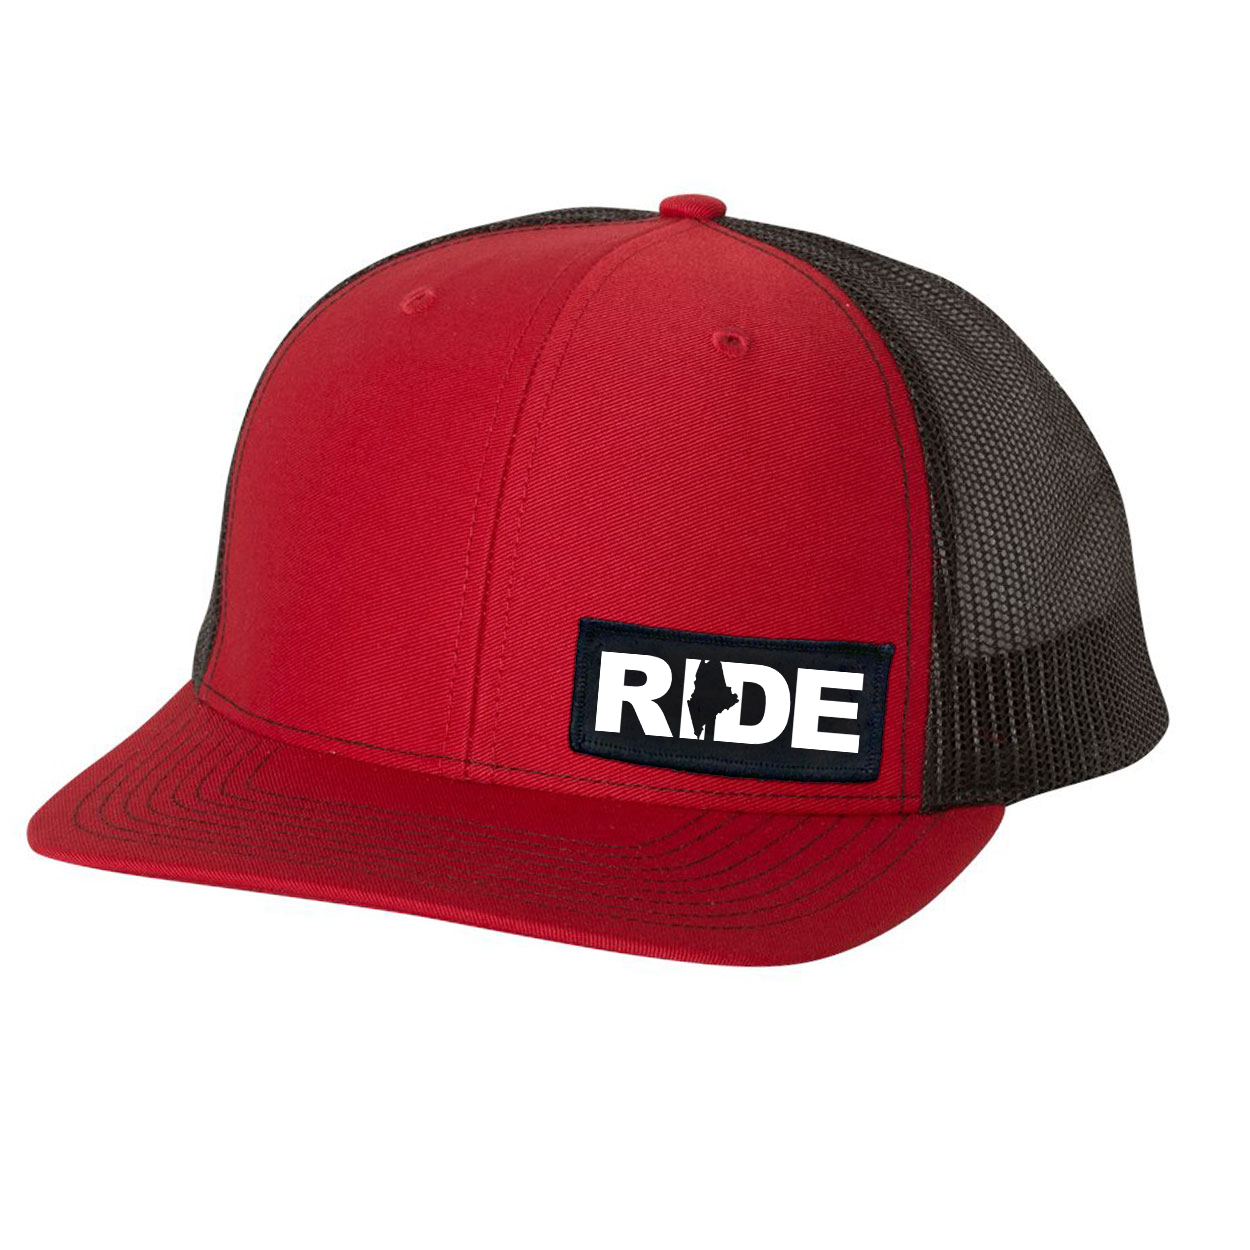 Ride Maine Night Out Woven Patch Snapback Trucker Hat Red/Black (White Logo)